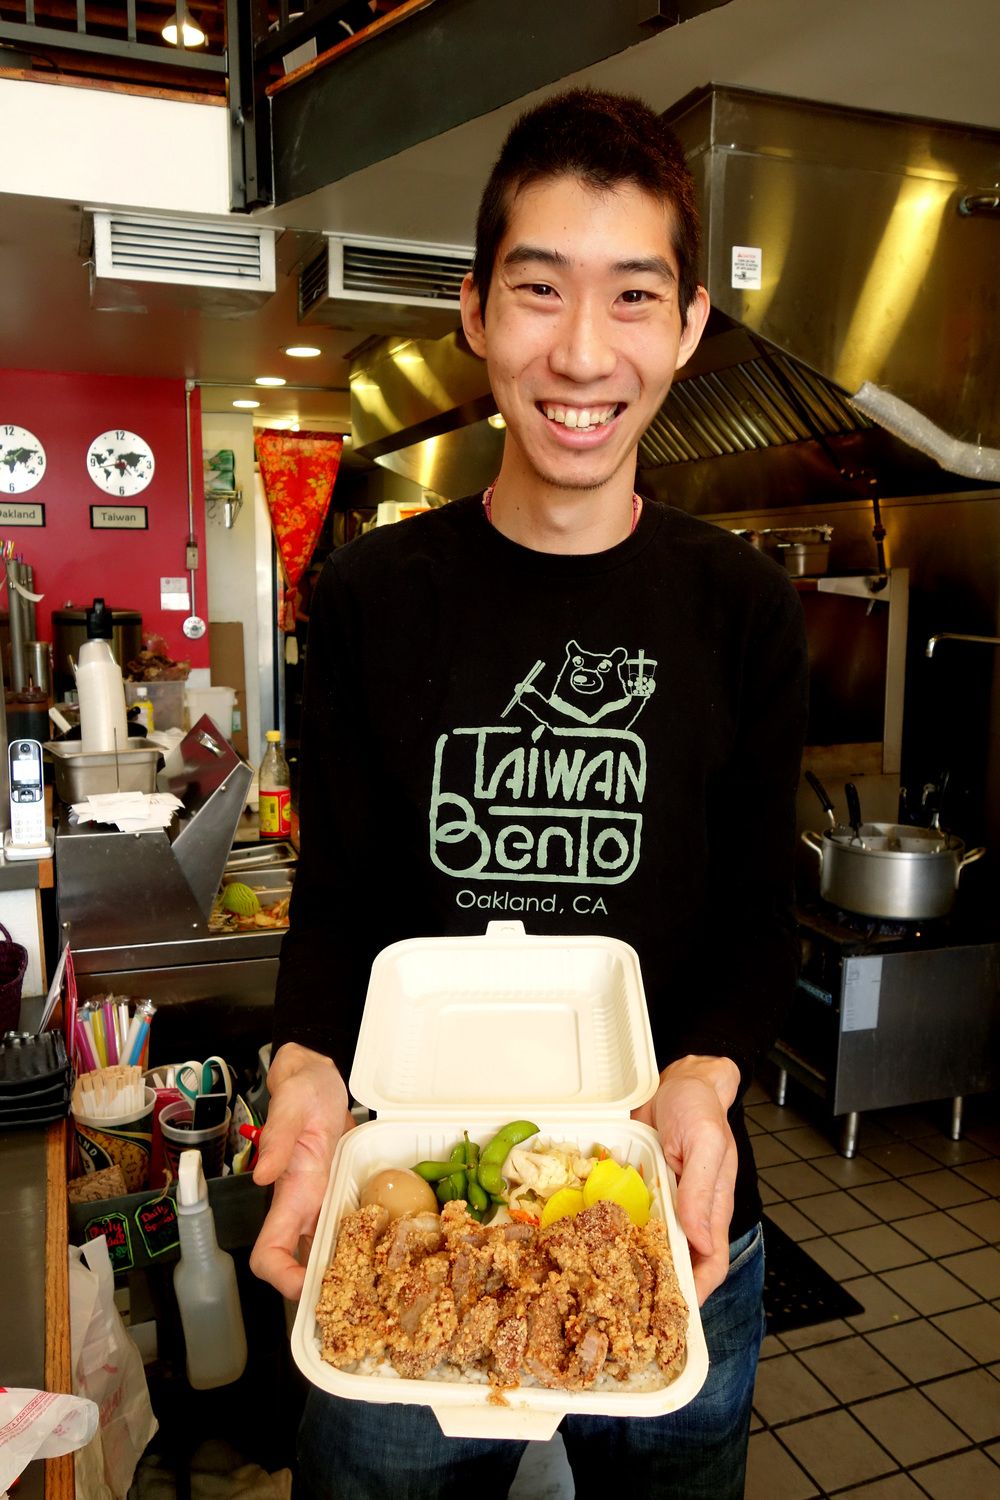 Willy Wang holding their Chicken Bento at Taiwan Bento in Oakland, California. 2016.